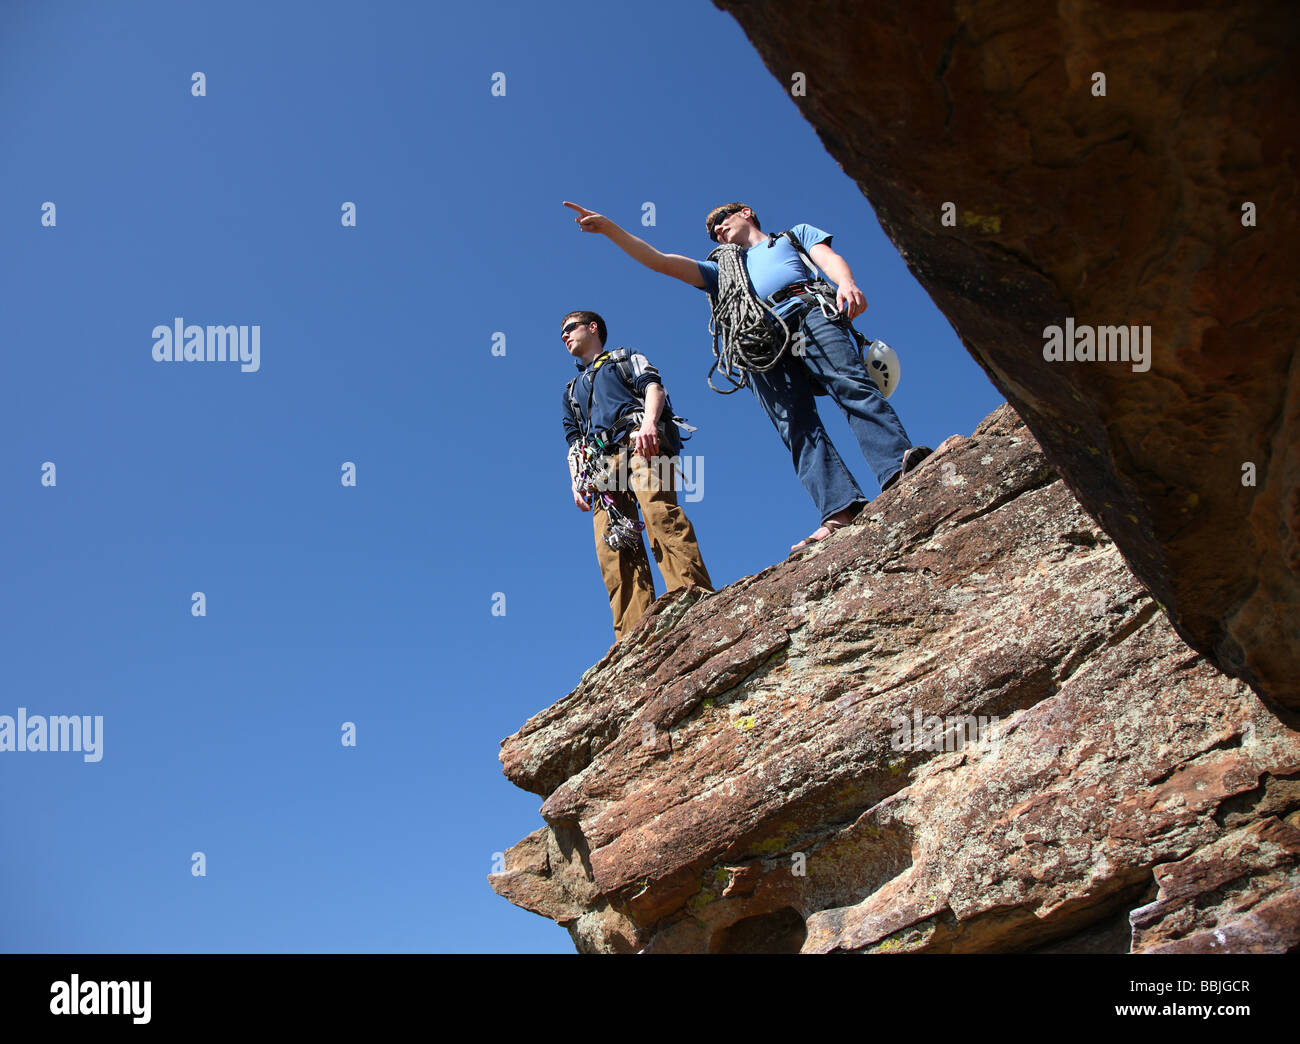 Two rock climbers standing on ledge - Stock Image